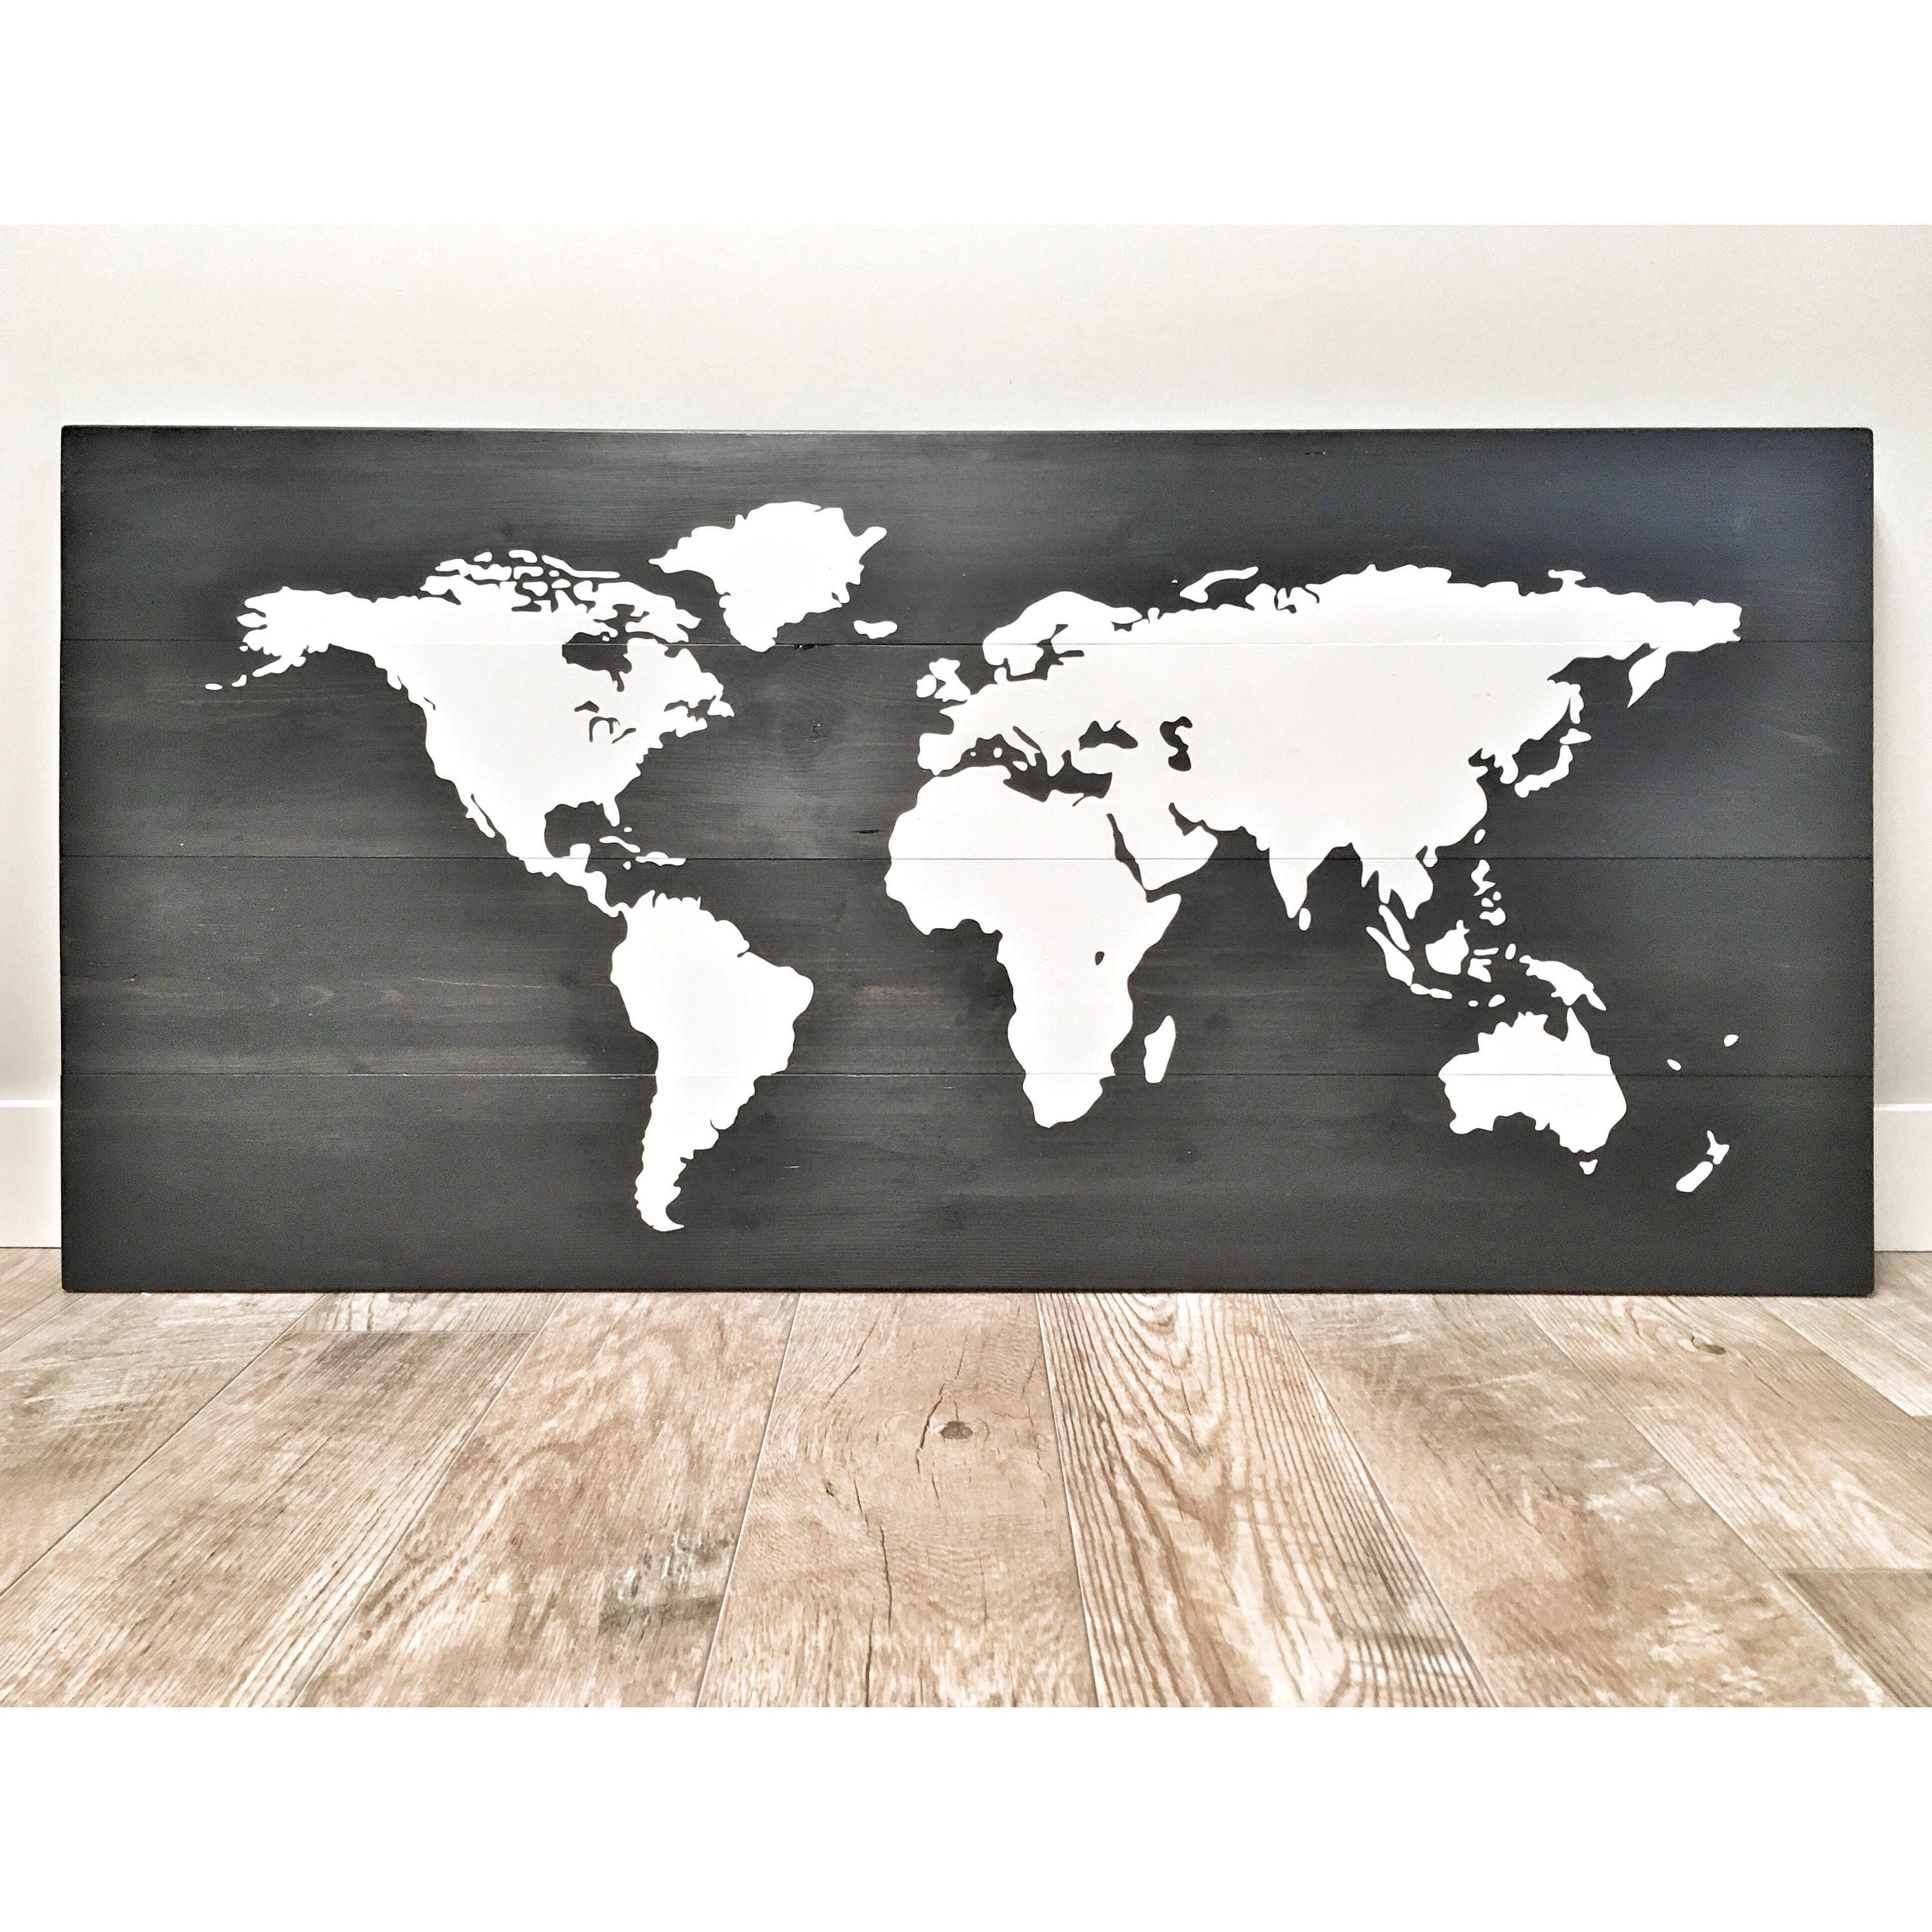 Huge large rustic wood world map rustic decor farmhouse decor huge large rustic wood world map rustic decor farmhouse decor rustic nursery decor wall decor wooden white world map 46 x 22 gumiabroncs Gallery